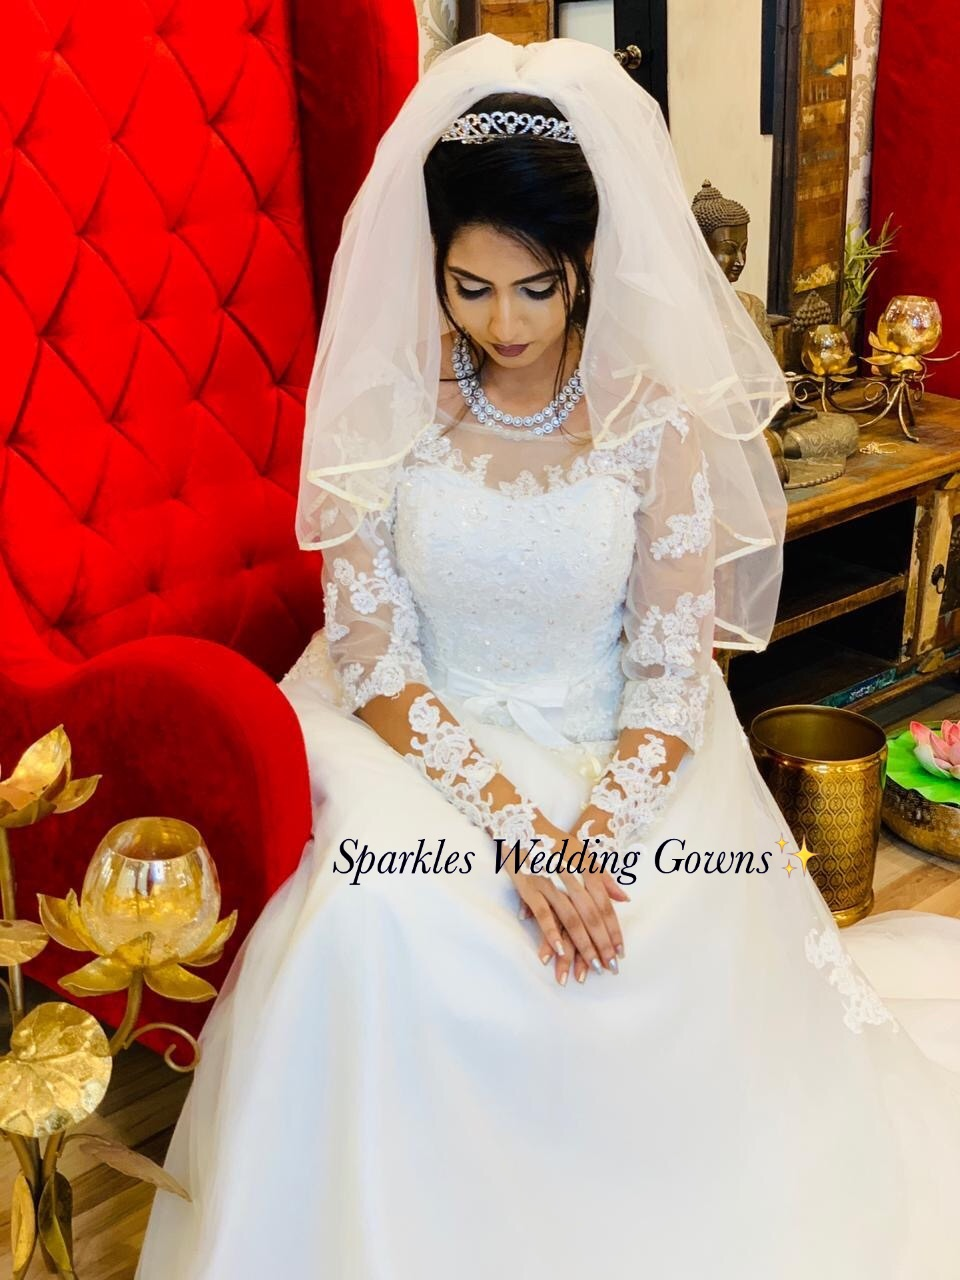 SPARKLES WEDDING GOWNS , # GOWNS IN BANGALORE   #BRIDAL GOWNS IN BANGALORE   # WEDDING GOWN MANUFACTURERS   #WEDDING GOWN DESIGN  # GOWNS IN BANGALORE  # BRIDAL BOUTIQUE   #GOWN SHOP   # BRIDAL STORE  # BRIDAL GOWN